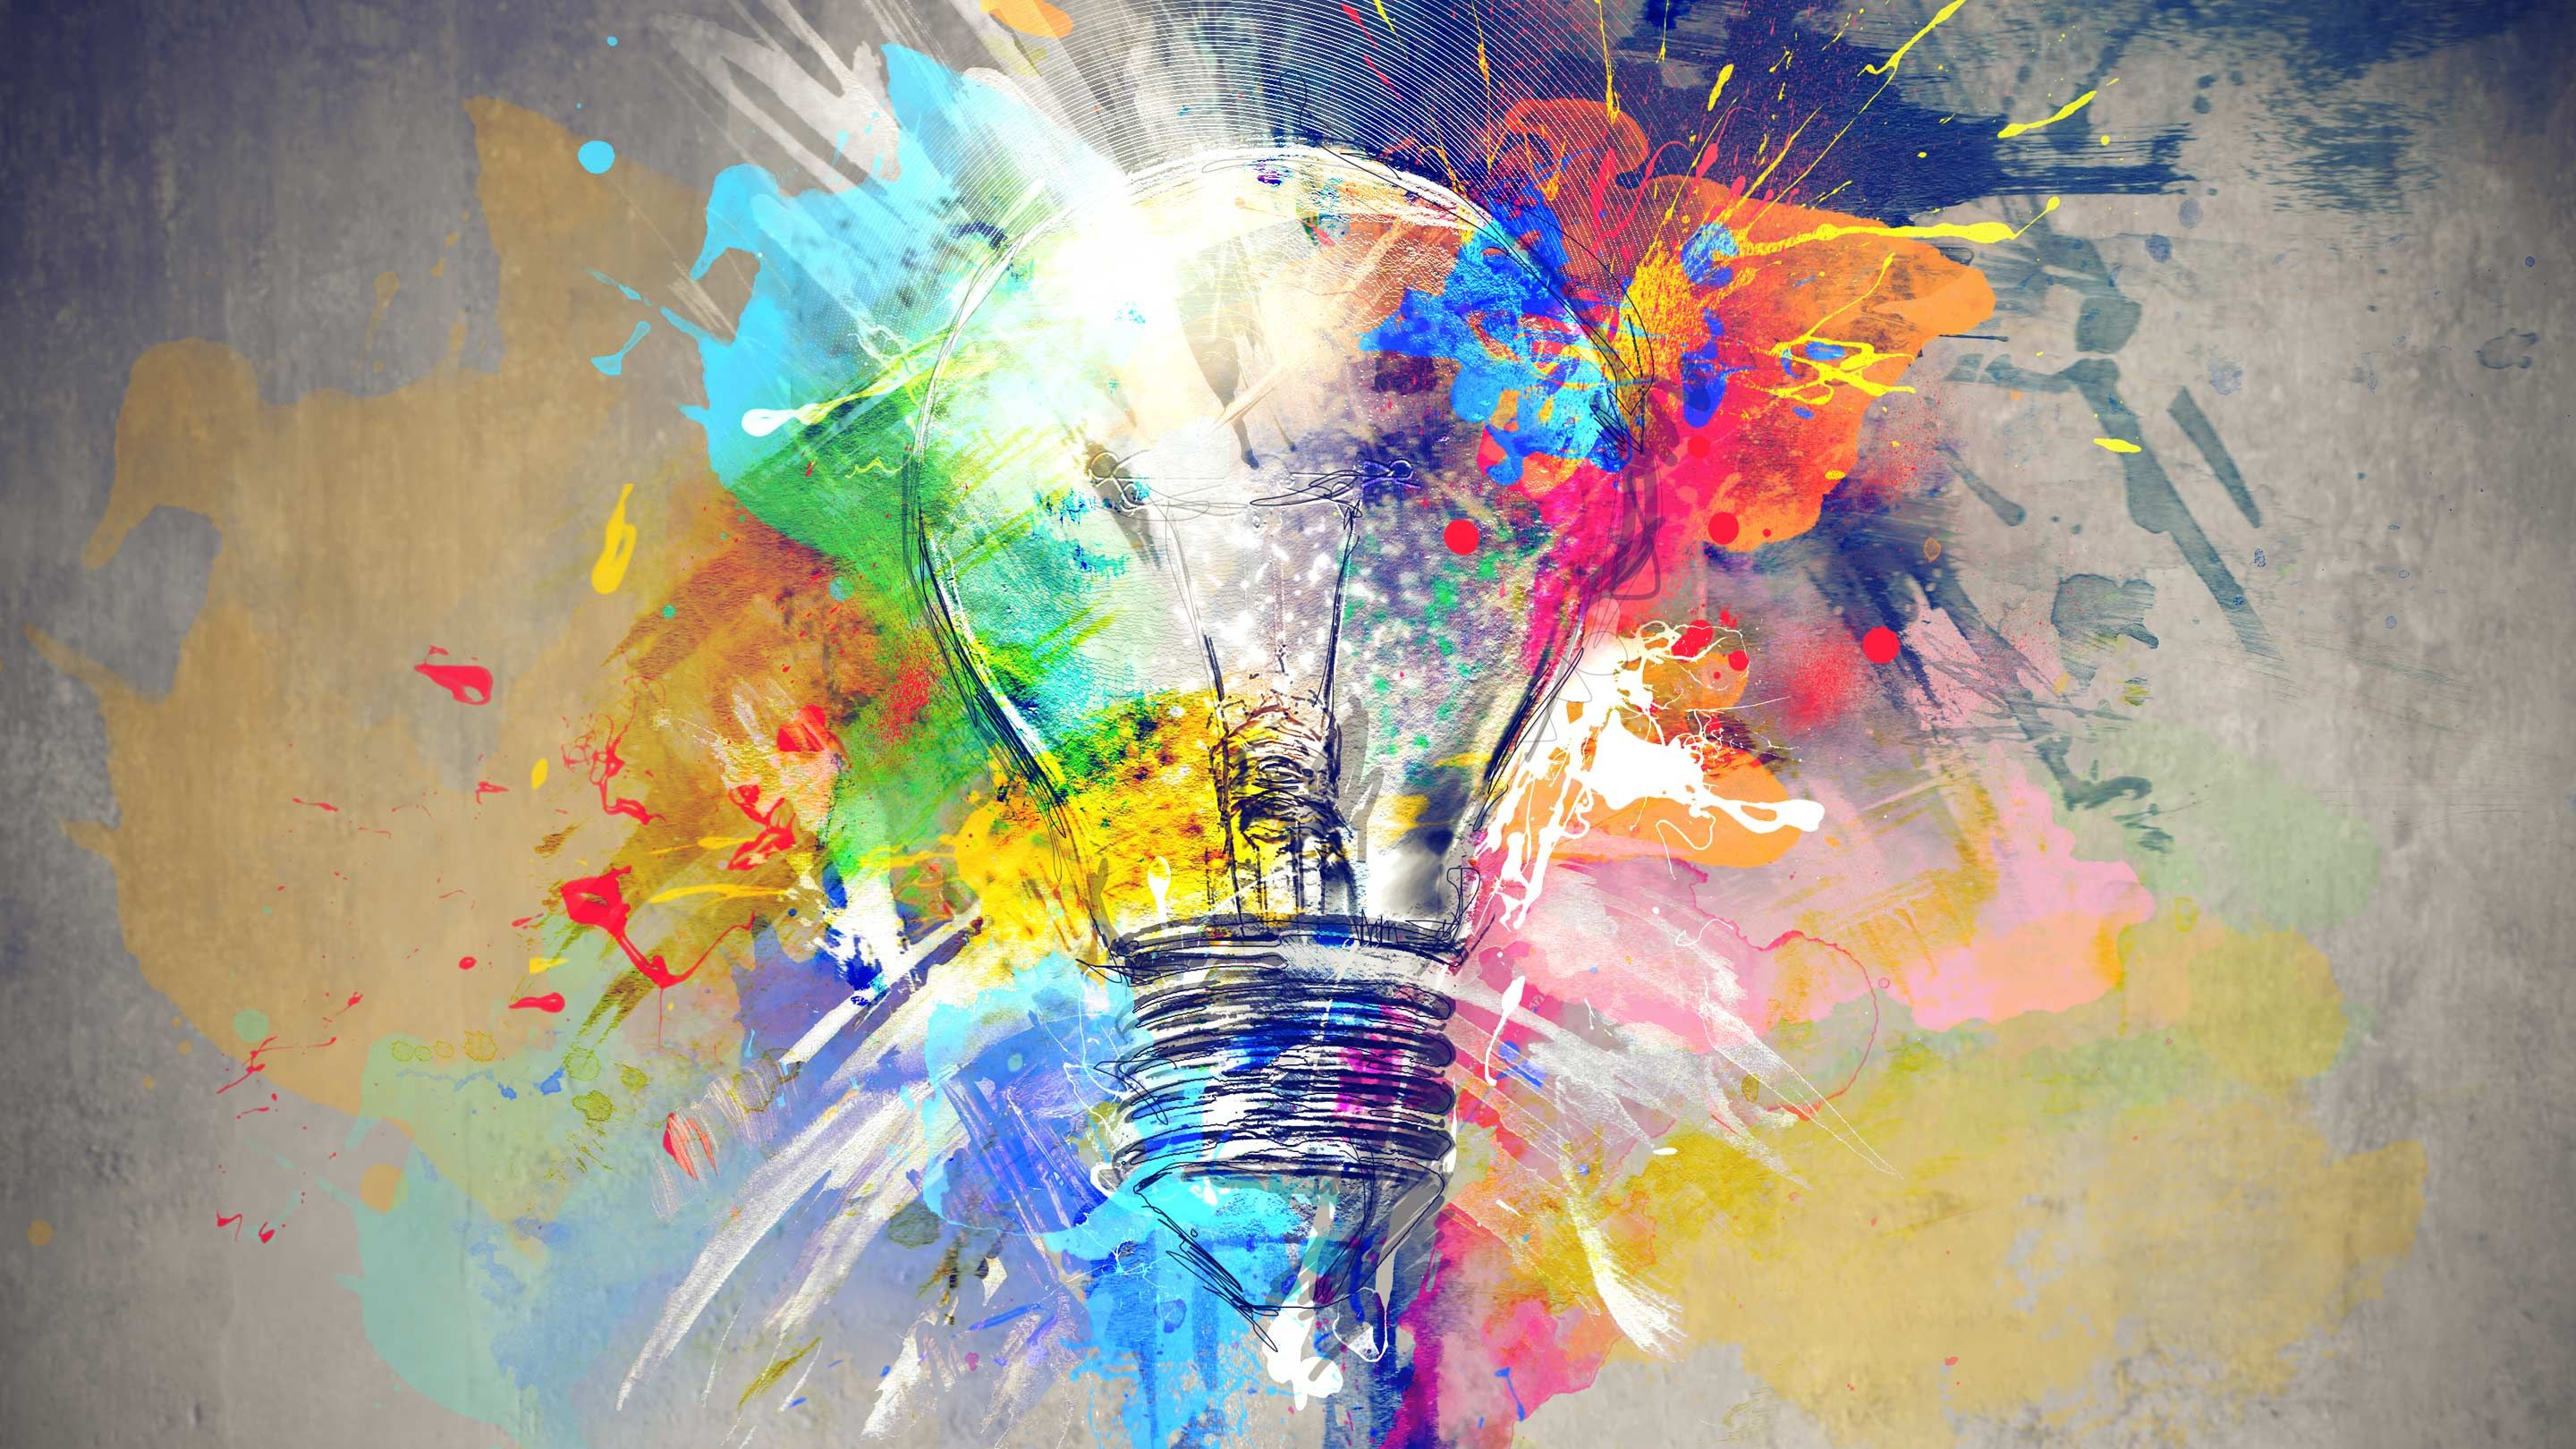 Illustration of a light bulb with splashes of bright paint, representing the flash of creativity